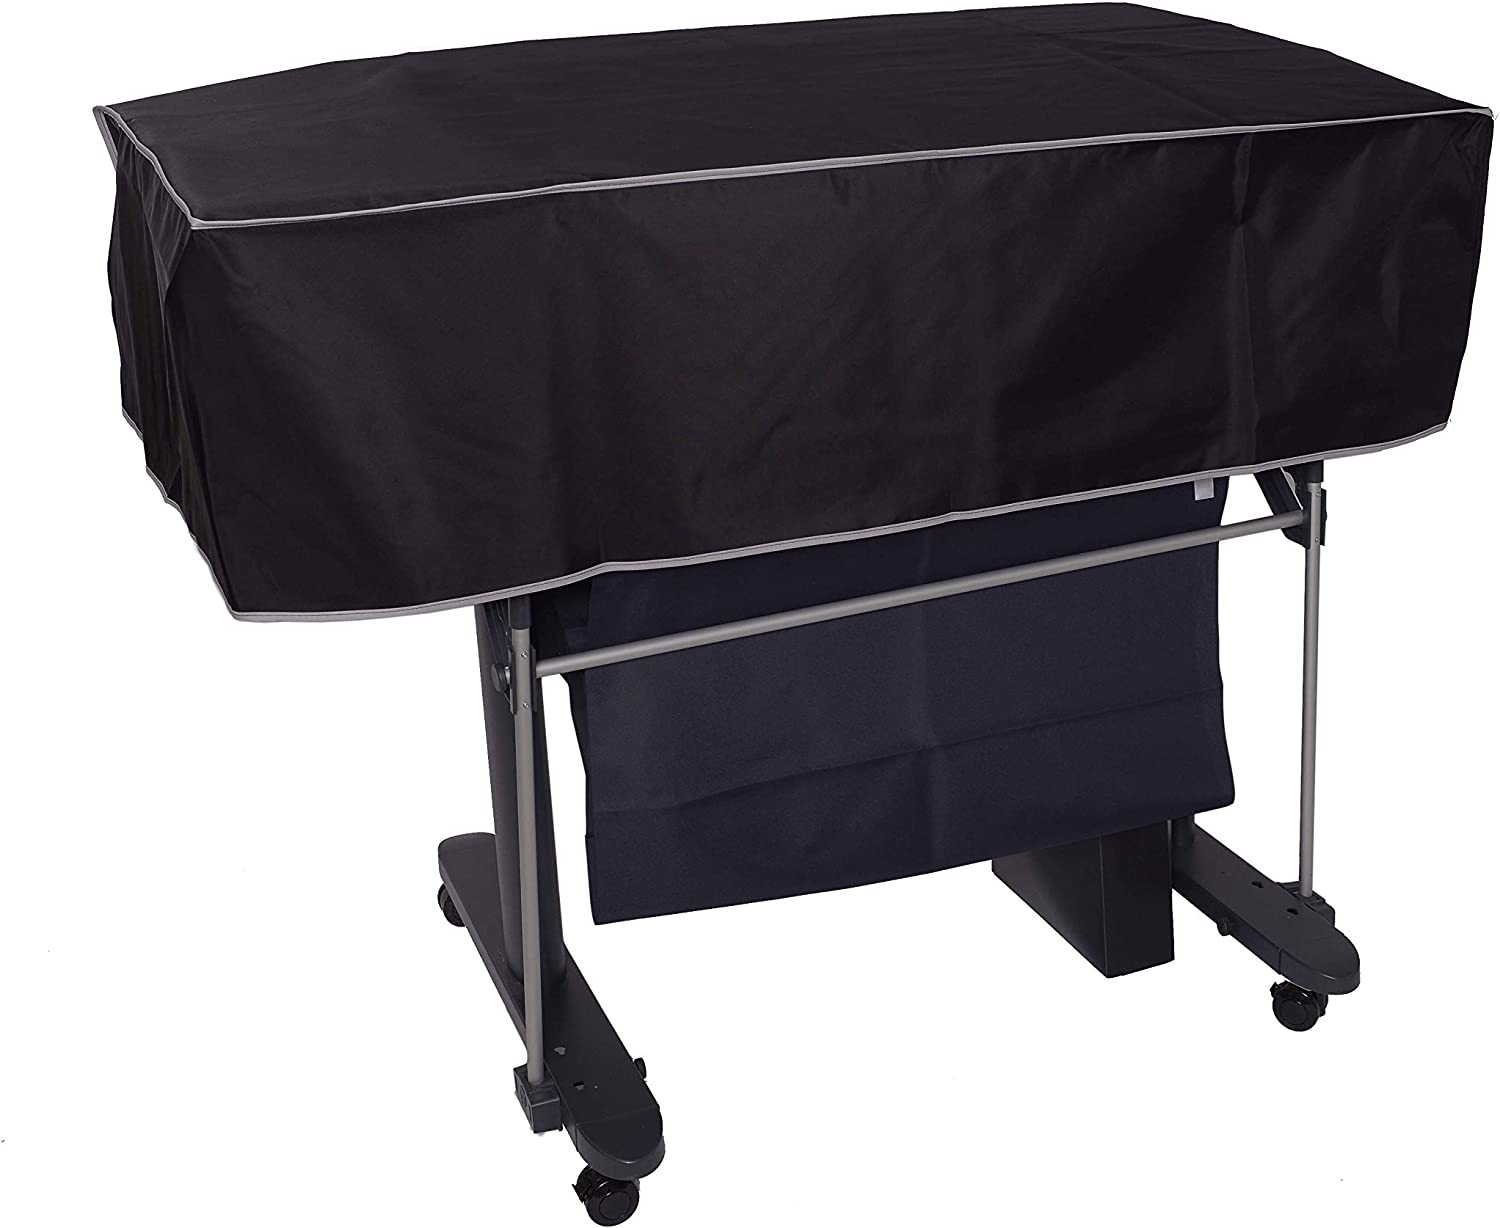 The Perfect Dust Cover, Black Nylon Short Cover for HP DesignJet T520, DesignJet T525 and DesignJet T530 36-in Wide Format Printers, Anti Static and Waterproof by The Perfect Dust Cover LLC